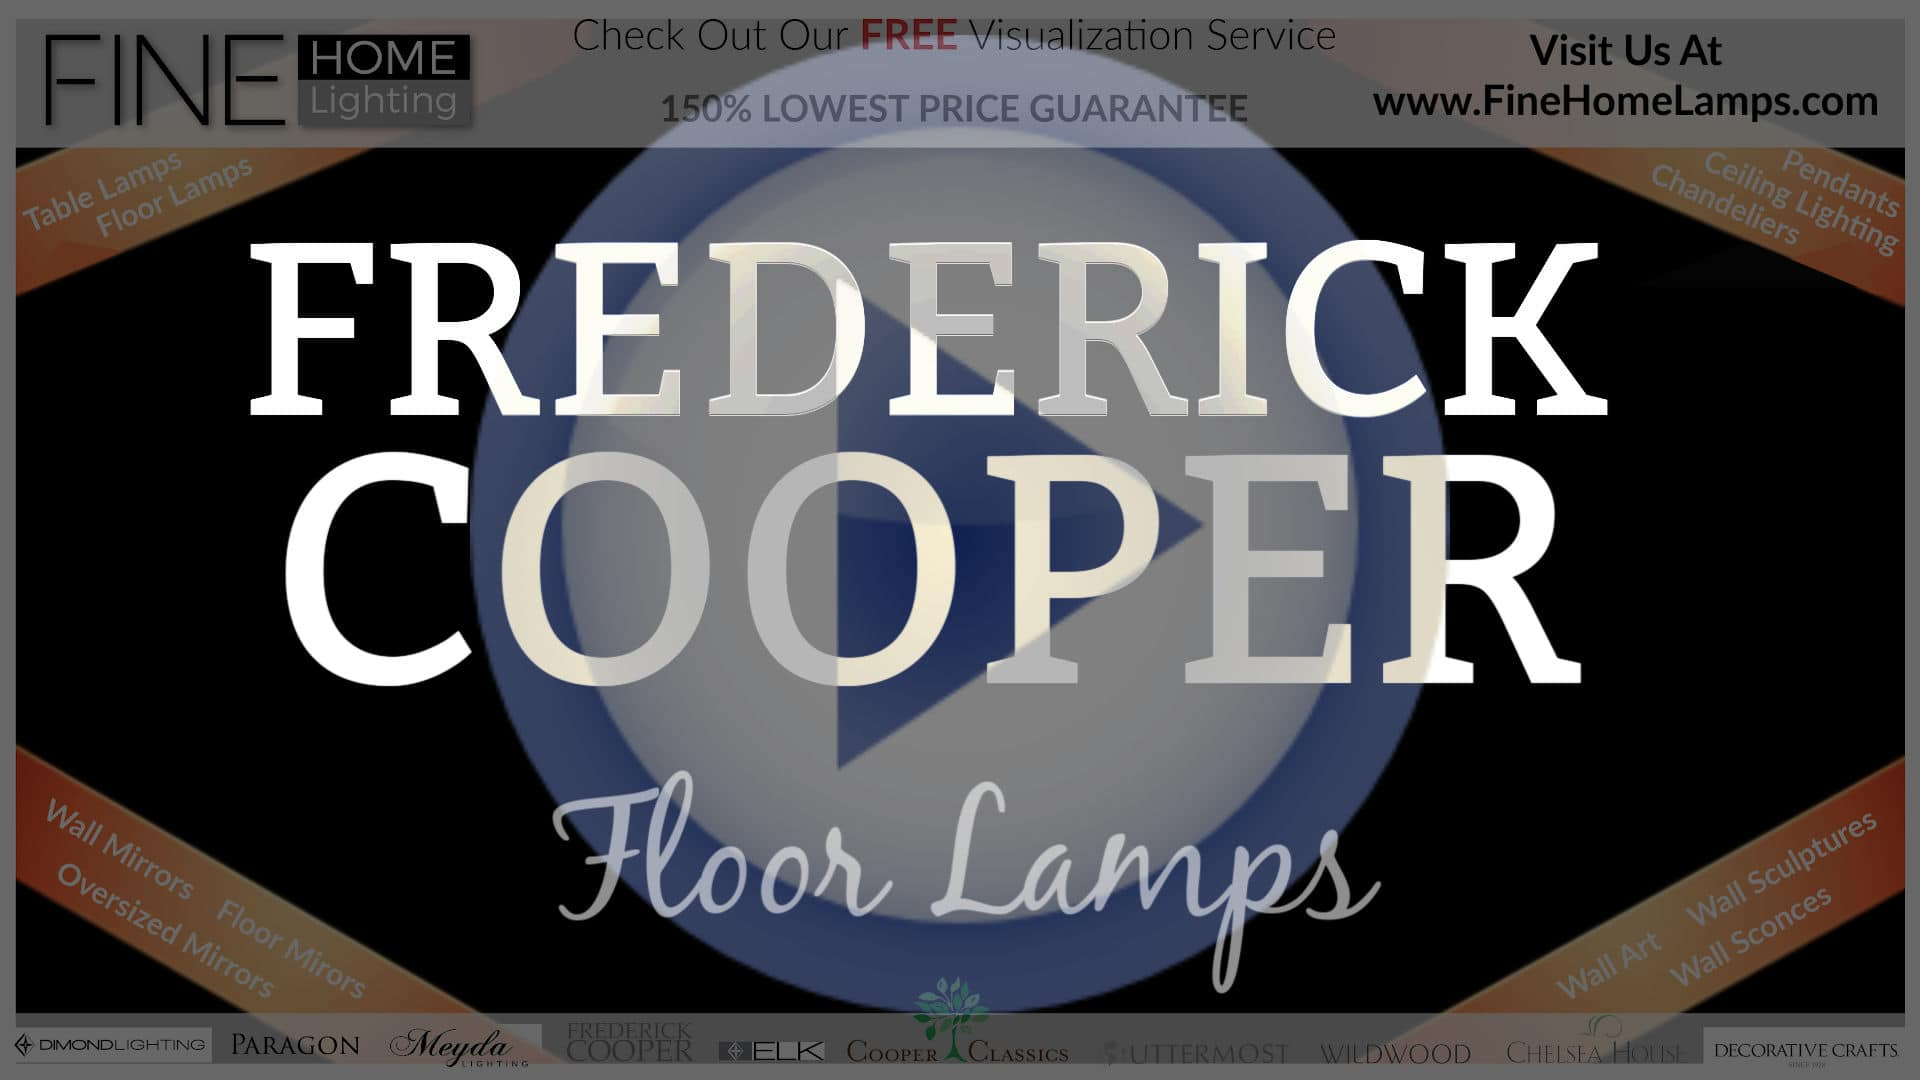 FREDERICK-COOPER-FLOOR-LAMPS-Thanks-for-watching-this-video-Get-an-additional-15-percent-off-your-next-purchase-Use-Coupon-Code-VIDEO-1